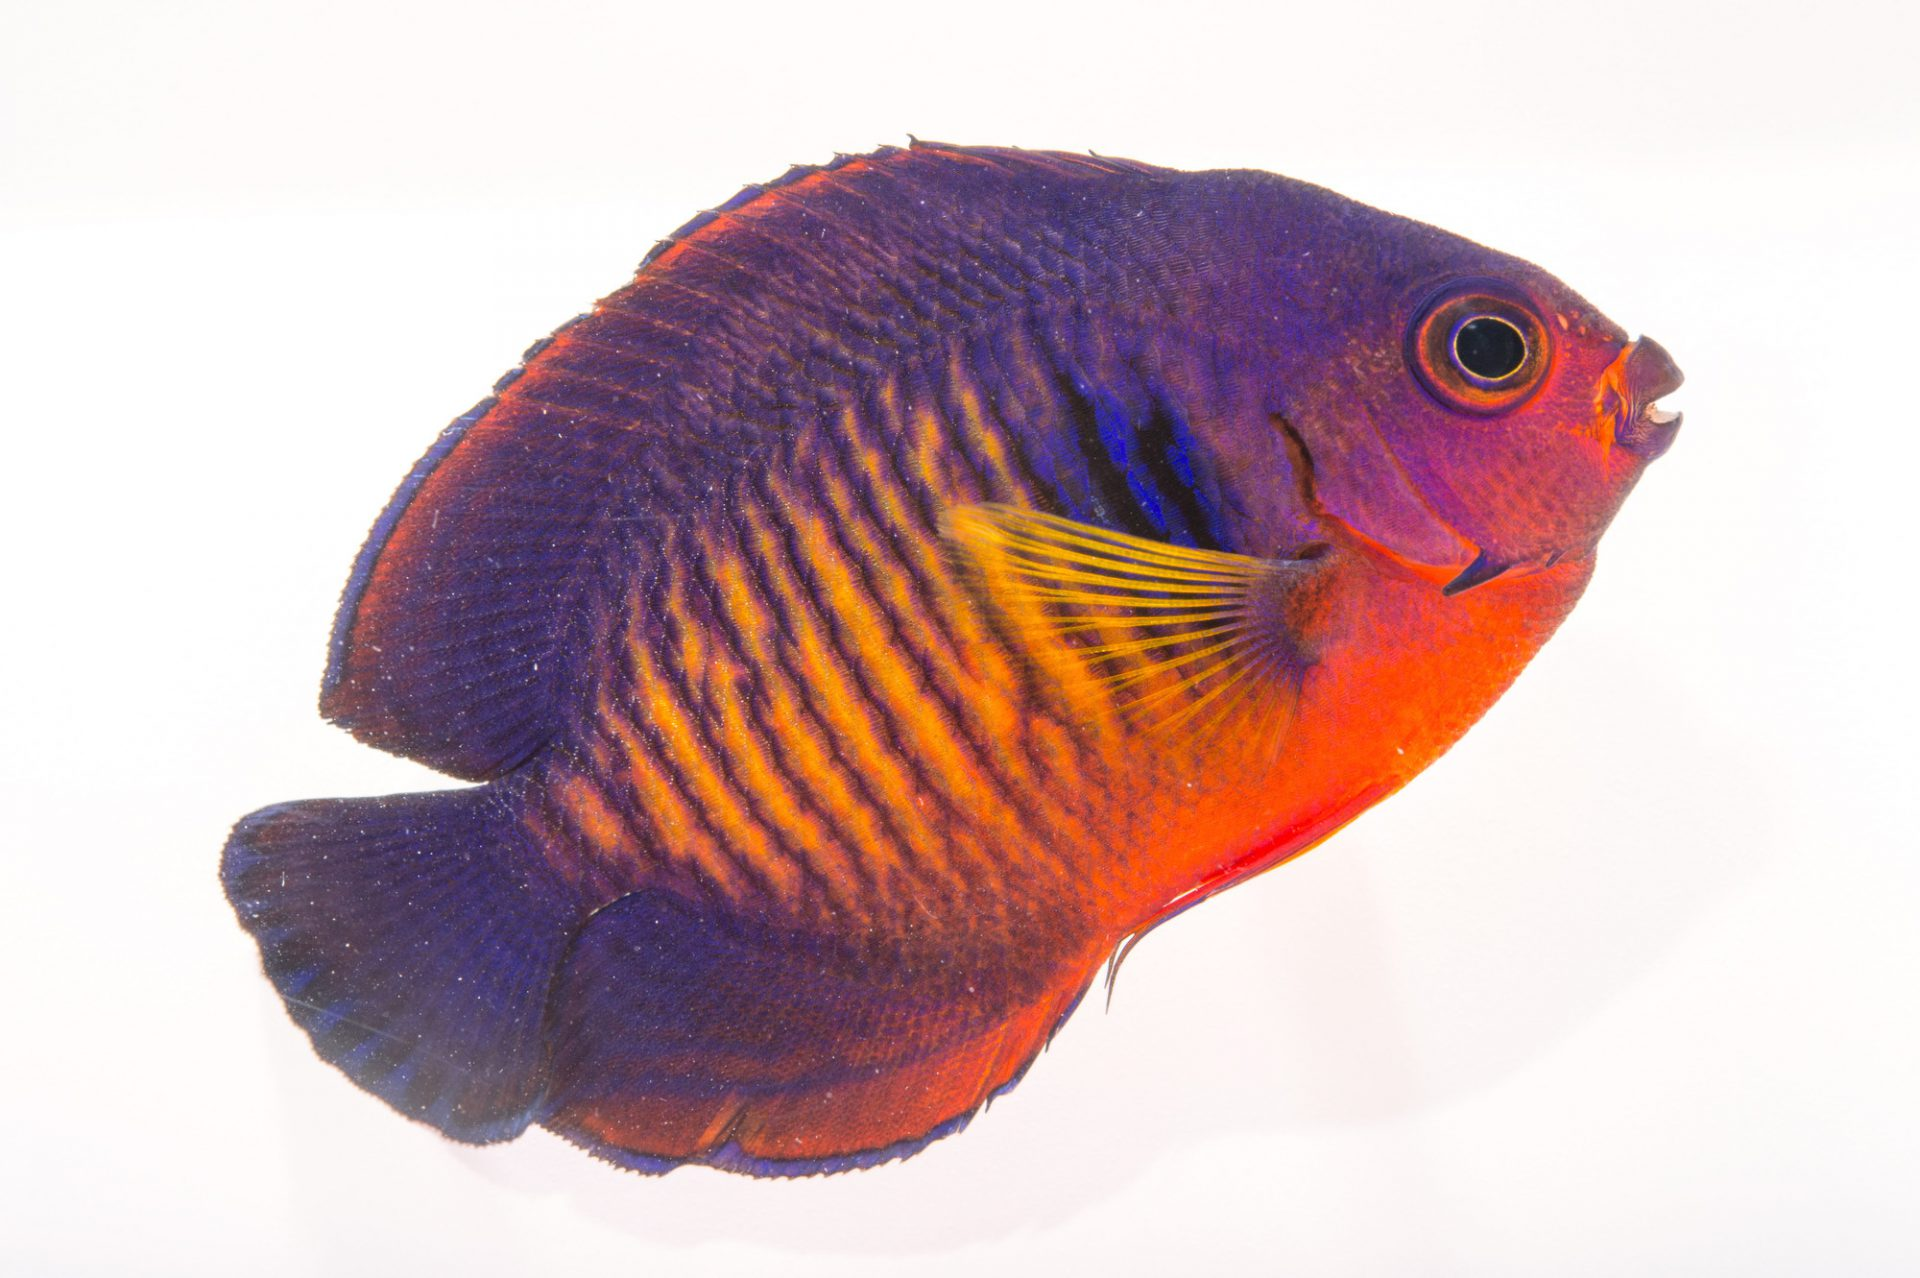 Picture of a twospined angelfish (Centropyge bispinosa) at Pure Aquariums.